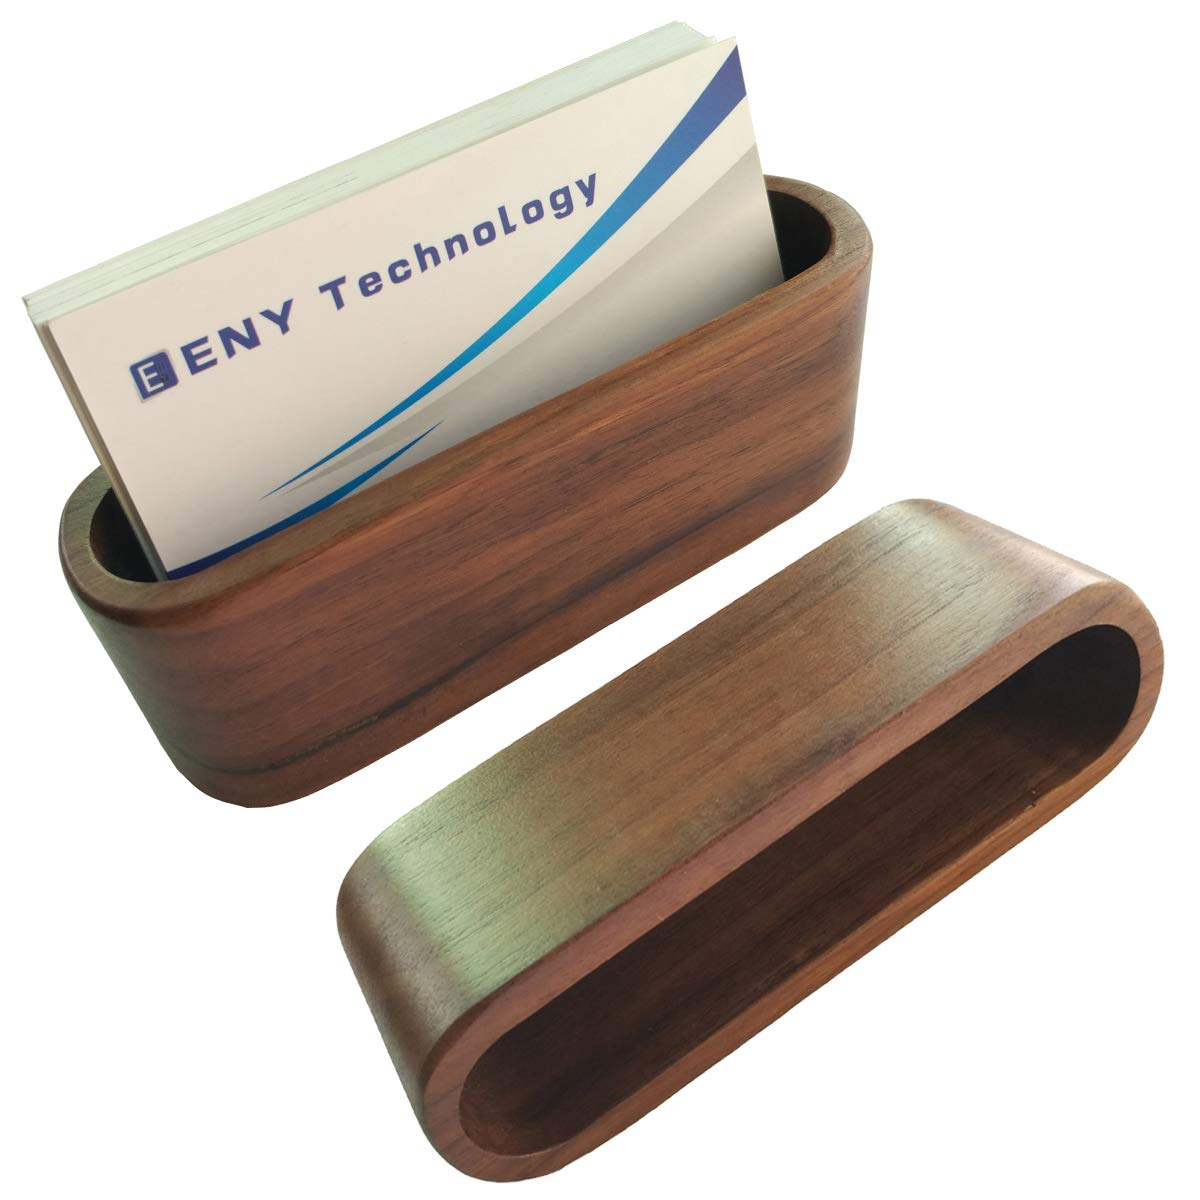 2 Pack Business Card Display Holder, Brown Walnut Wood Card Case for desk desktop, wooden Name Card Stand for Office, Name Card Holder for Tables Organizer index card filing